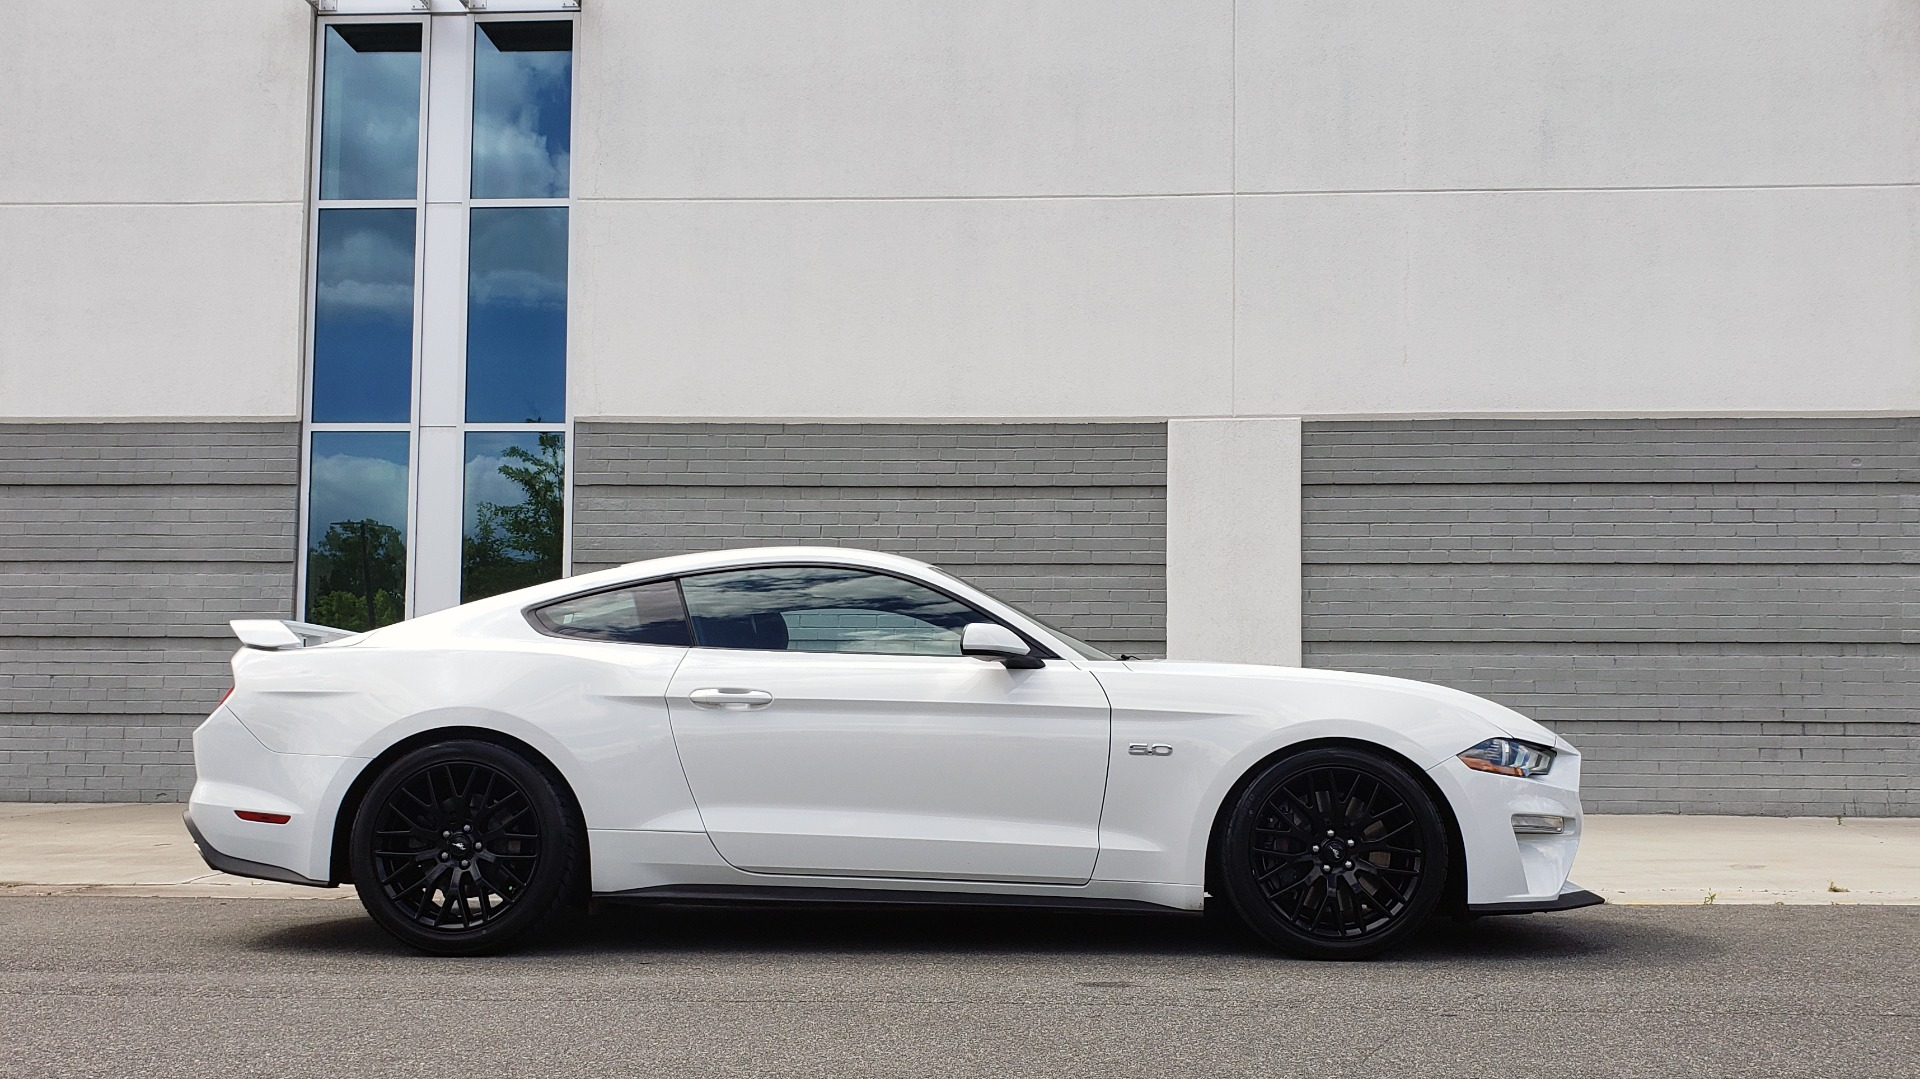 Used 2018 Ford MUSTANG GT COUPE / 5.0L V8 / AUTO / PERF PKG / REARVIEW / 19IN WHLS for sale Sold at Formula Imports in Charlotte NC 28227 11